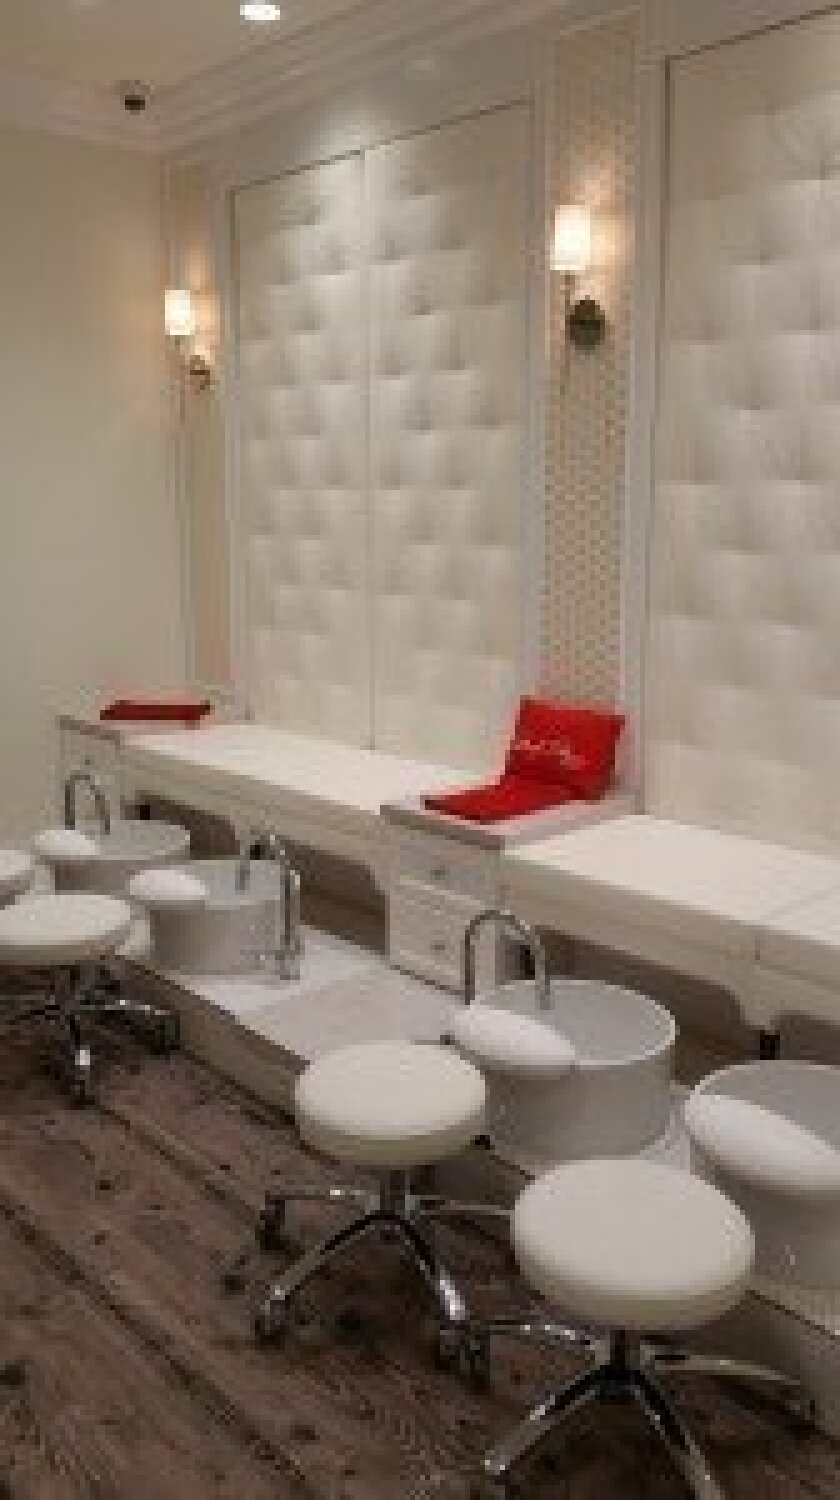 20 Nail Lounge opened July 11 in Carmel Valley, offering manicures and pedicures in a fun and clean environment.